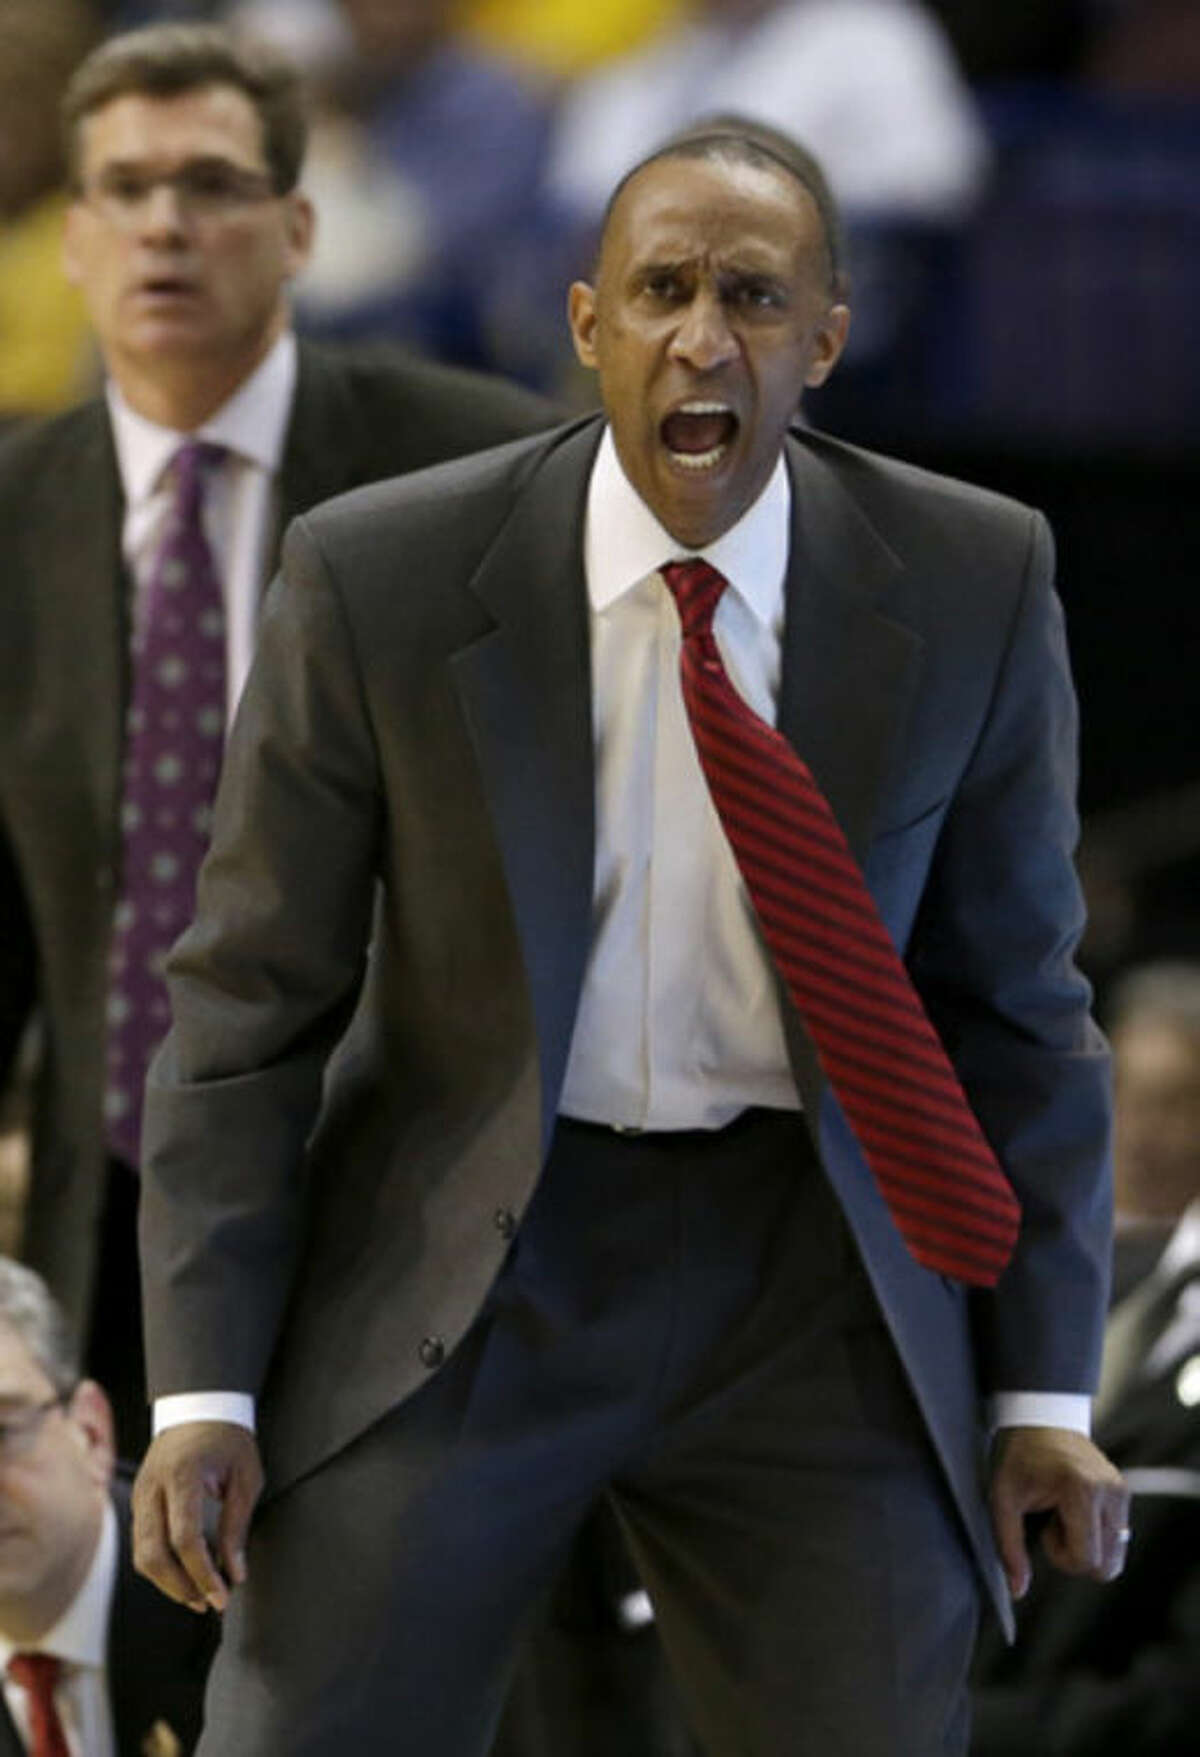 Stanford head coach Johnny Dawkins yells to his players during the second half of a second-round game in the NCAA college basketball tournament, Friday, March 21, 2014, in St. Louis. Stanford won the game 58-53. (AP Photo/Charlie Riedel)